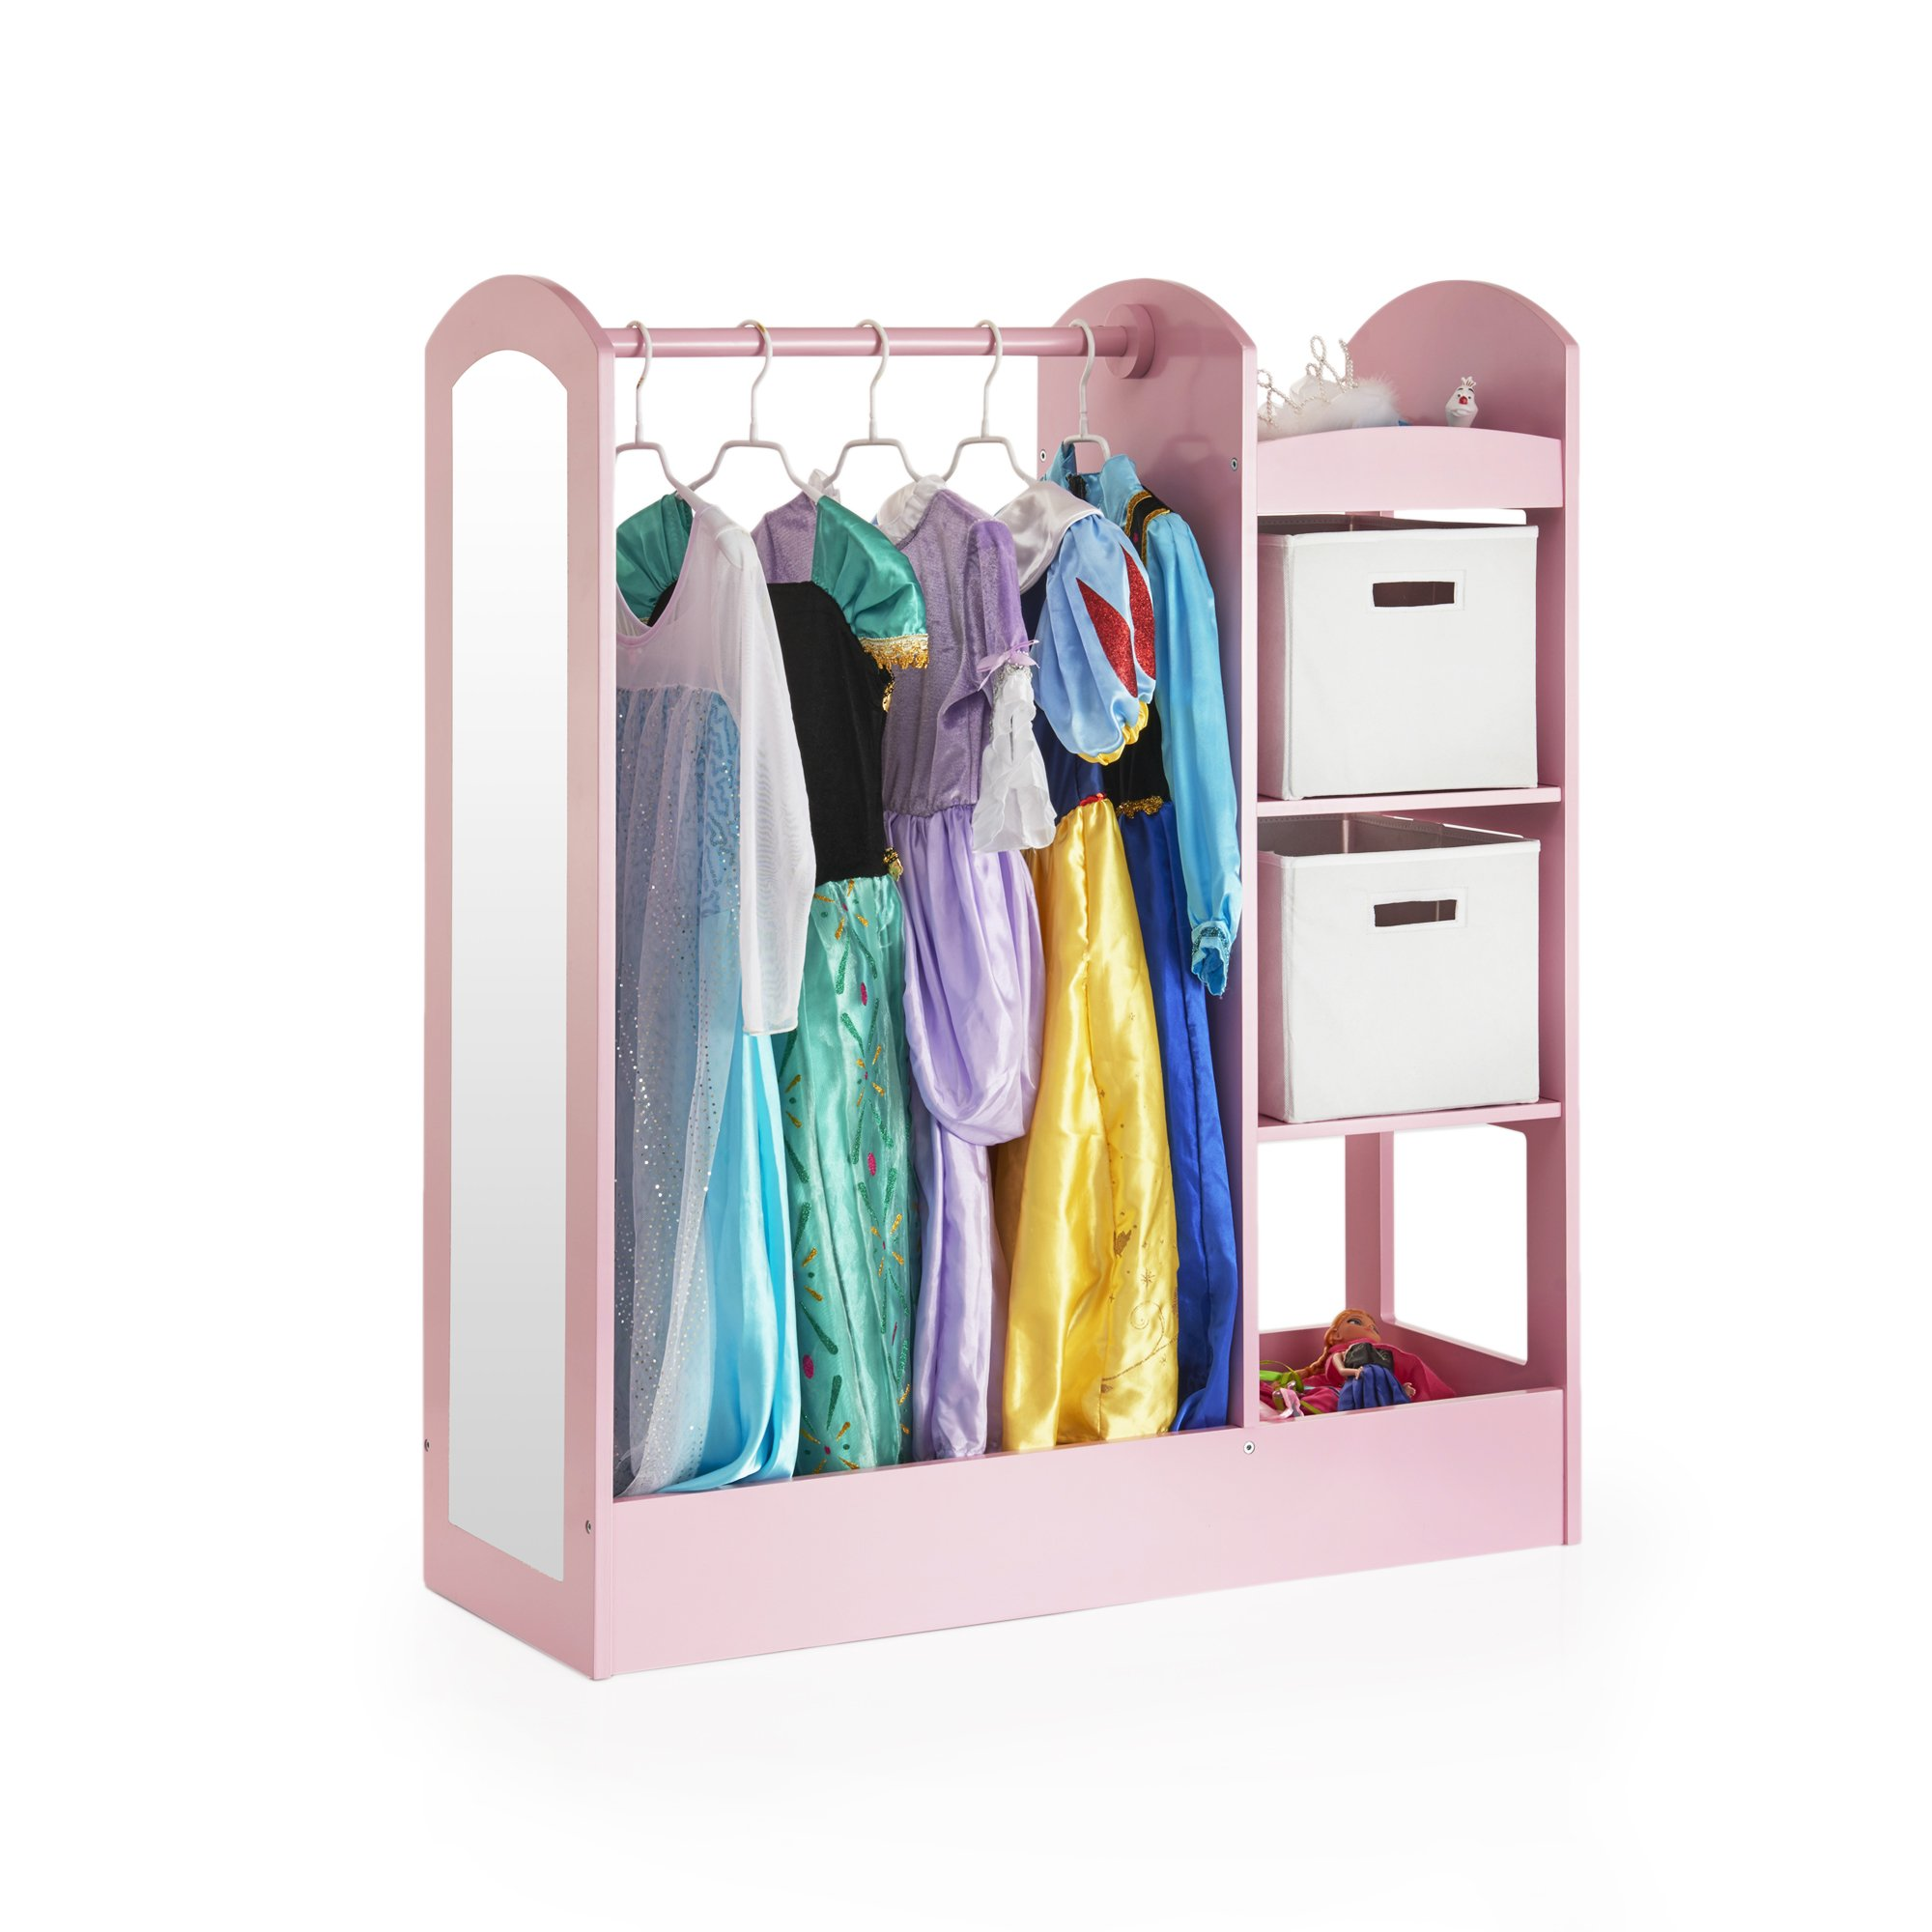 Guidecraft See and Store Dress Up Center Pink - Armoire, Dresser Kids' Furniture by Guidecraft (Image #1)